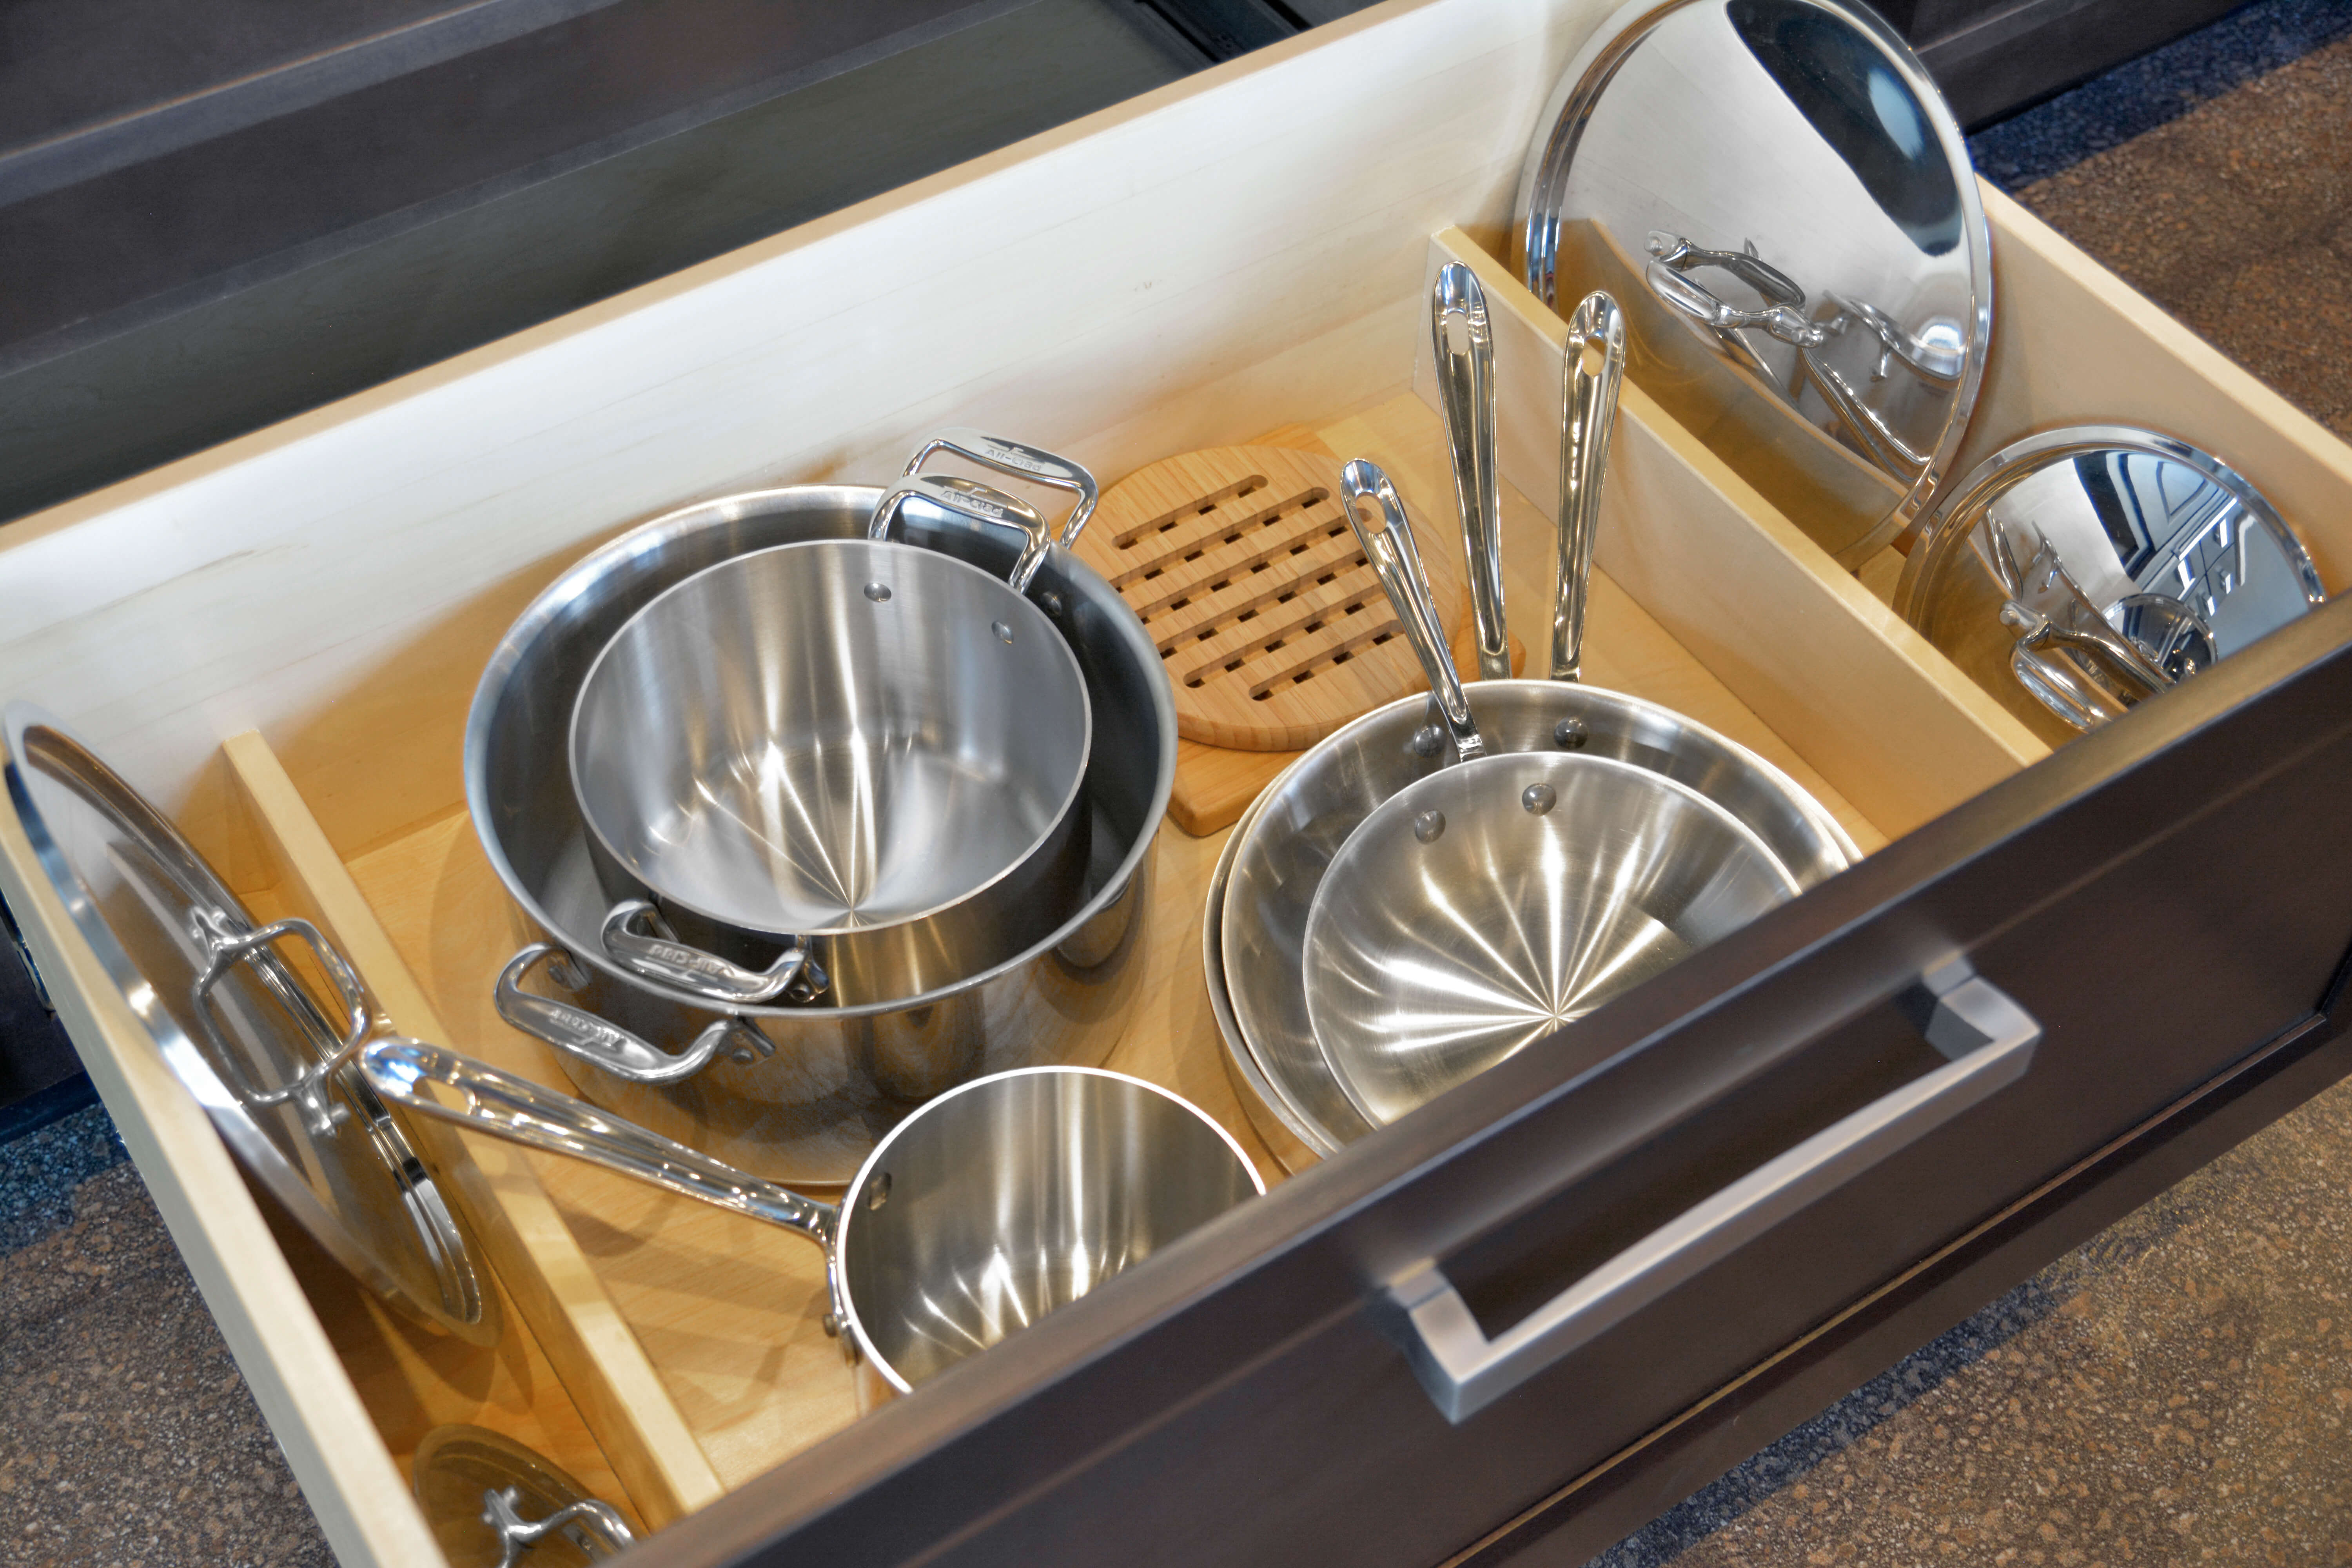 A deep drawer below a cooktop is an ideal location for pots and pans. Add Dura Supreme's Lid Storage Partitions (LSP-S) to stand lids on both sides of the drawer for easier access.